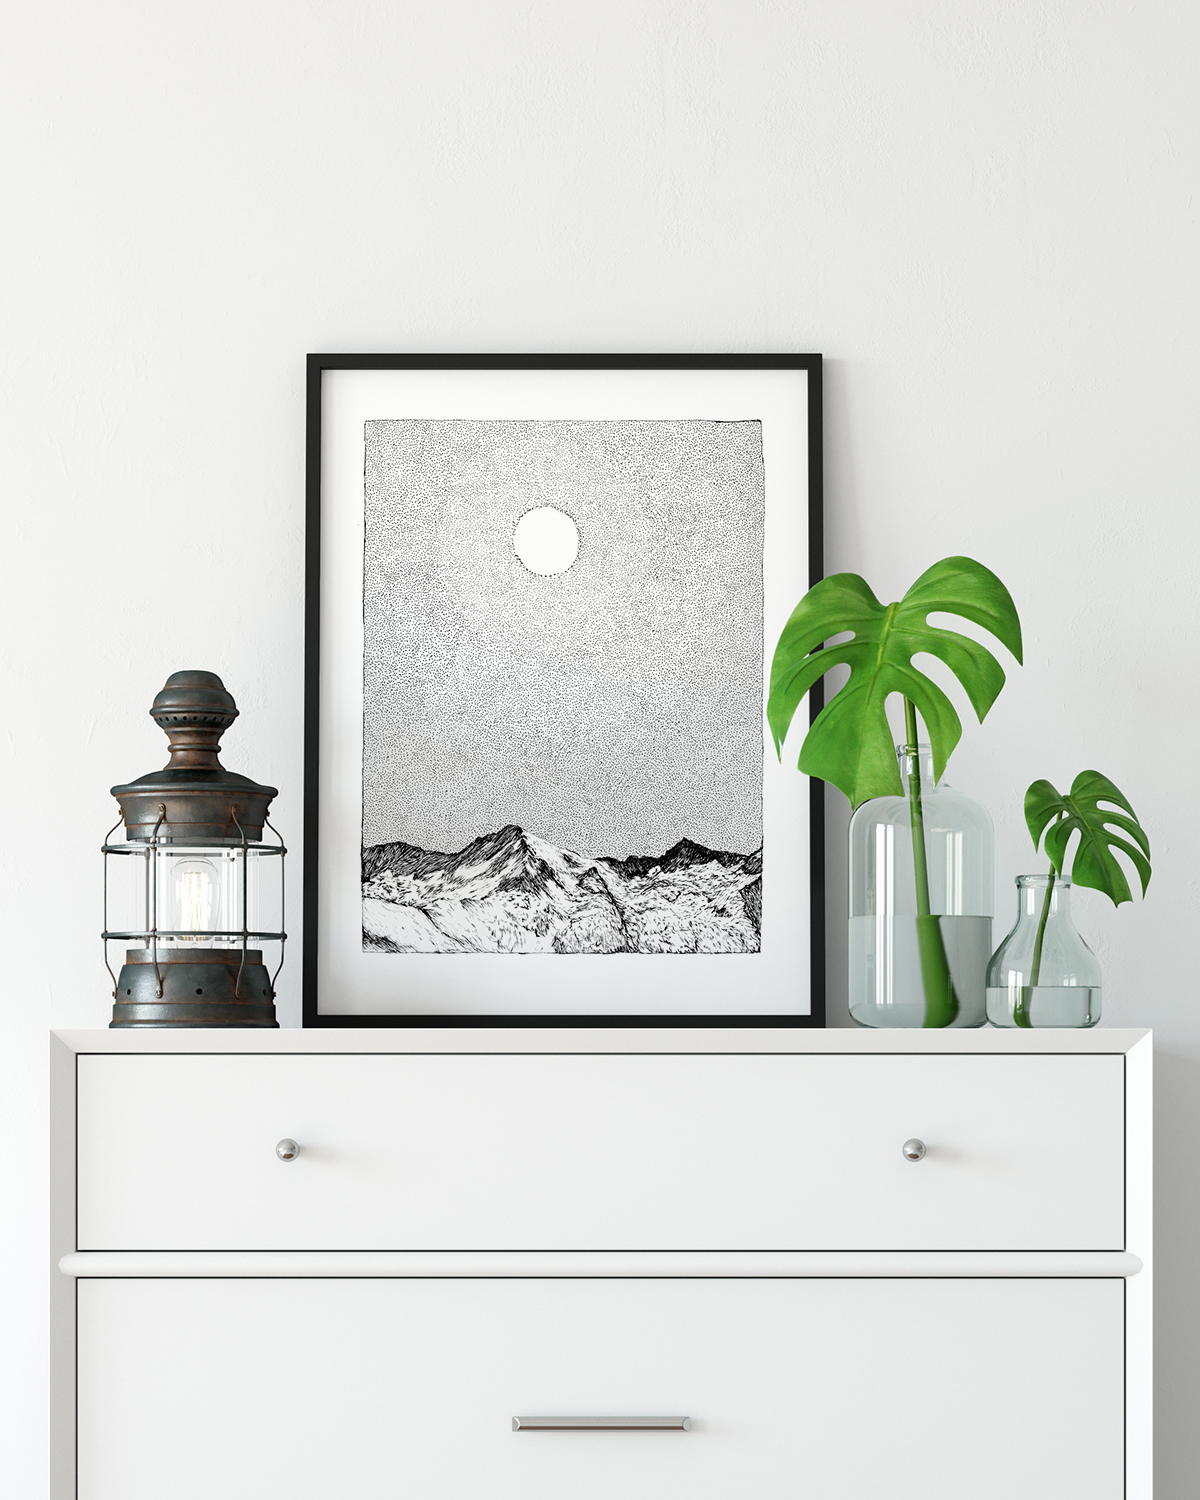 Framed art print of mountains by drawn together art collective